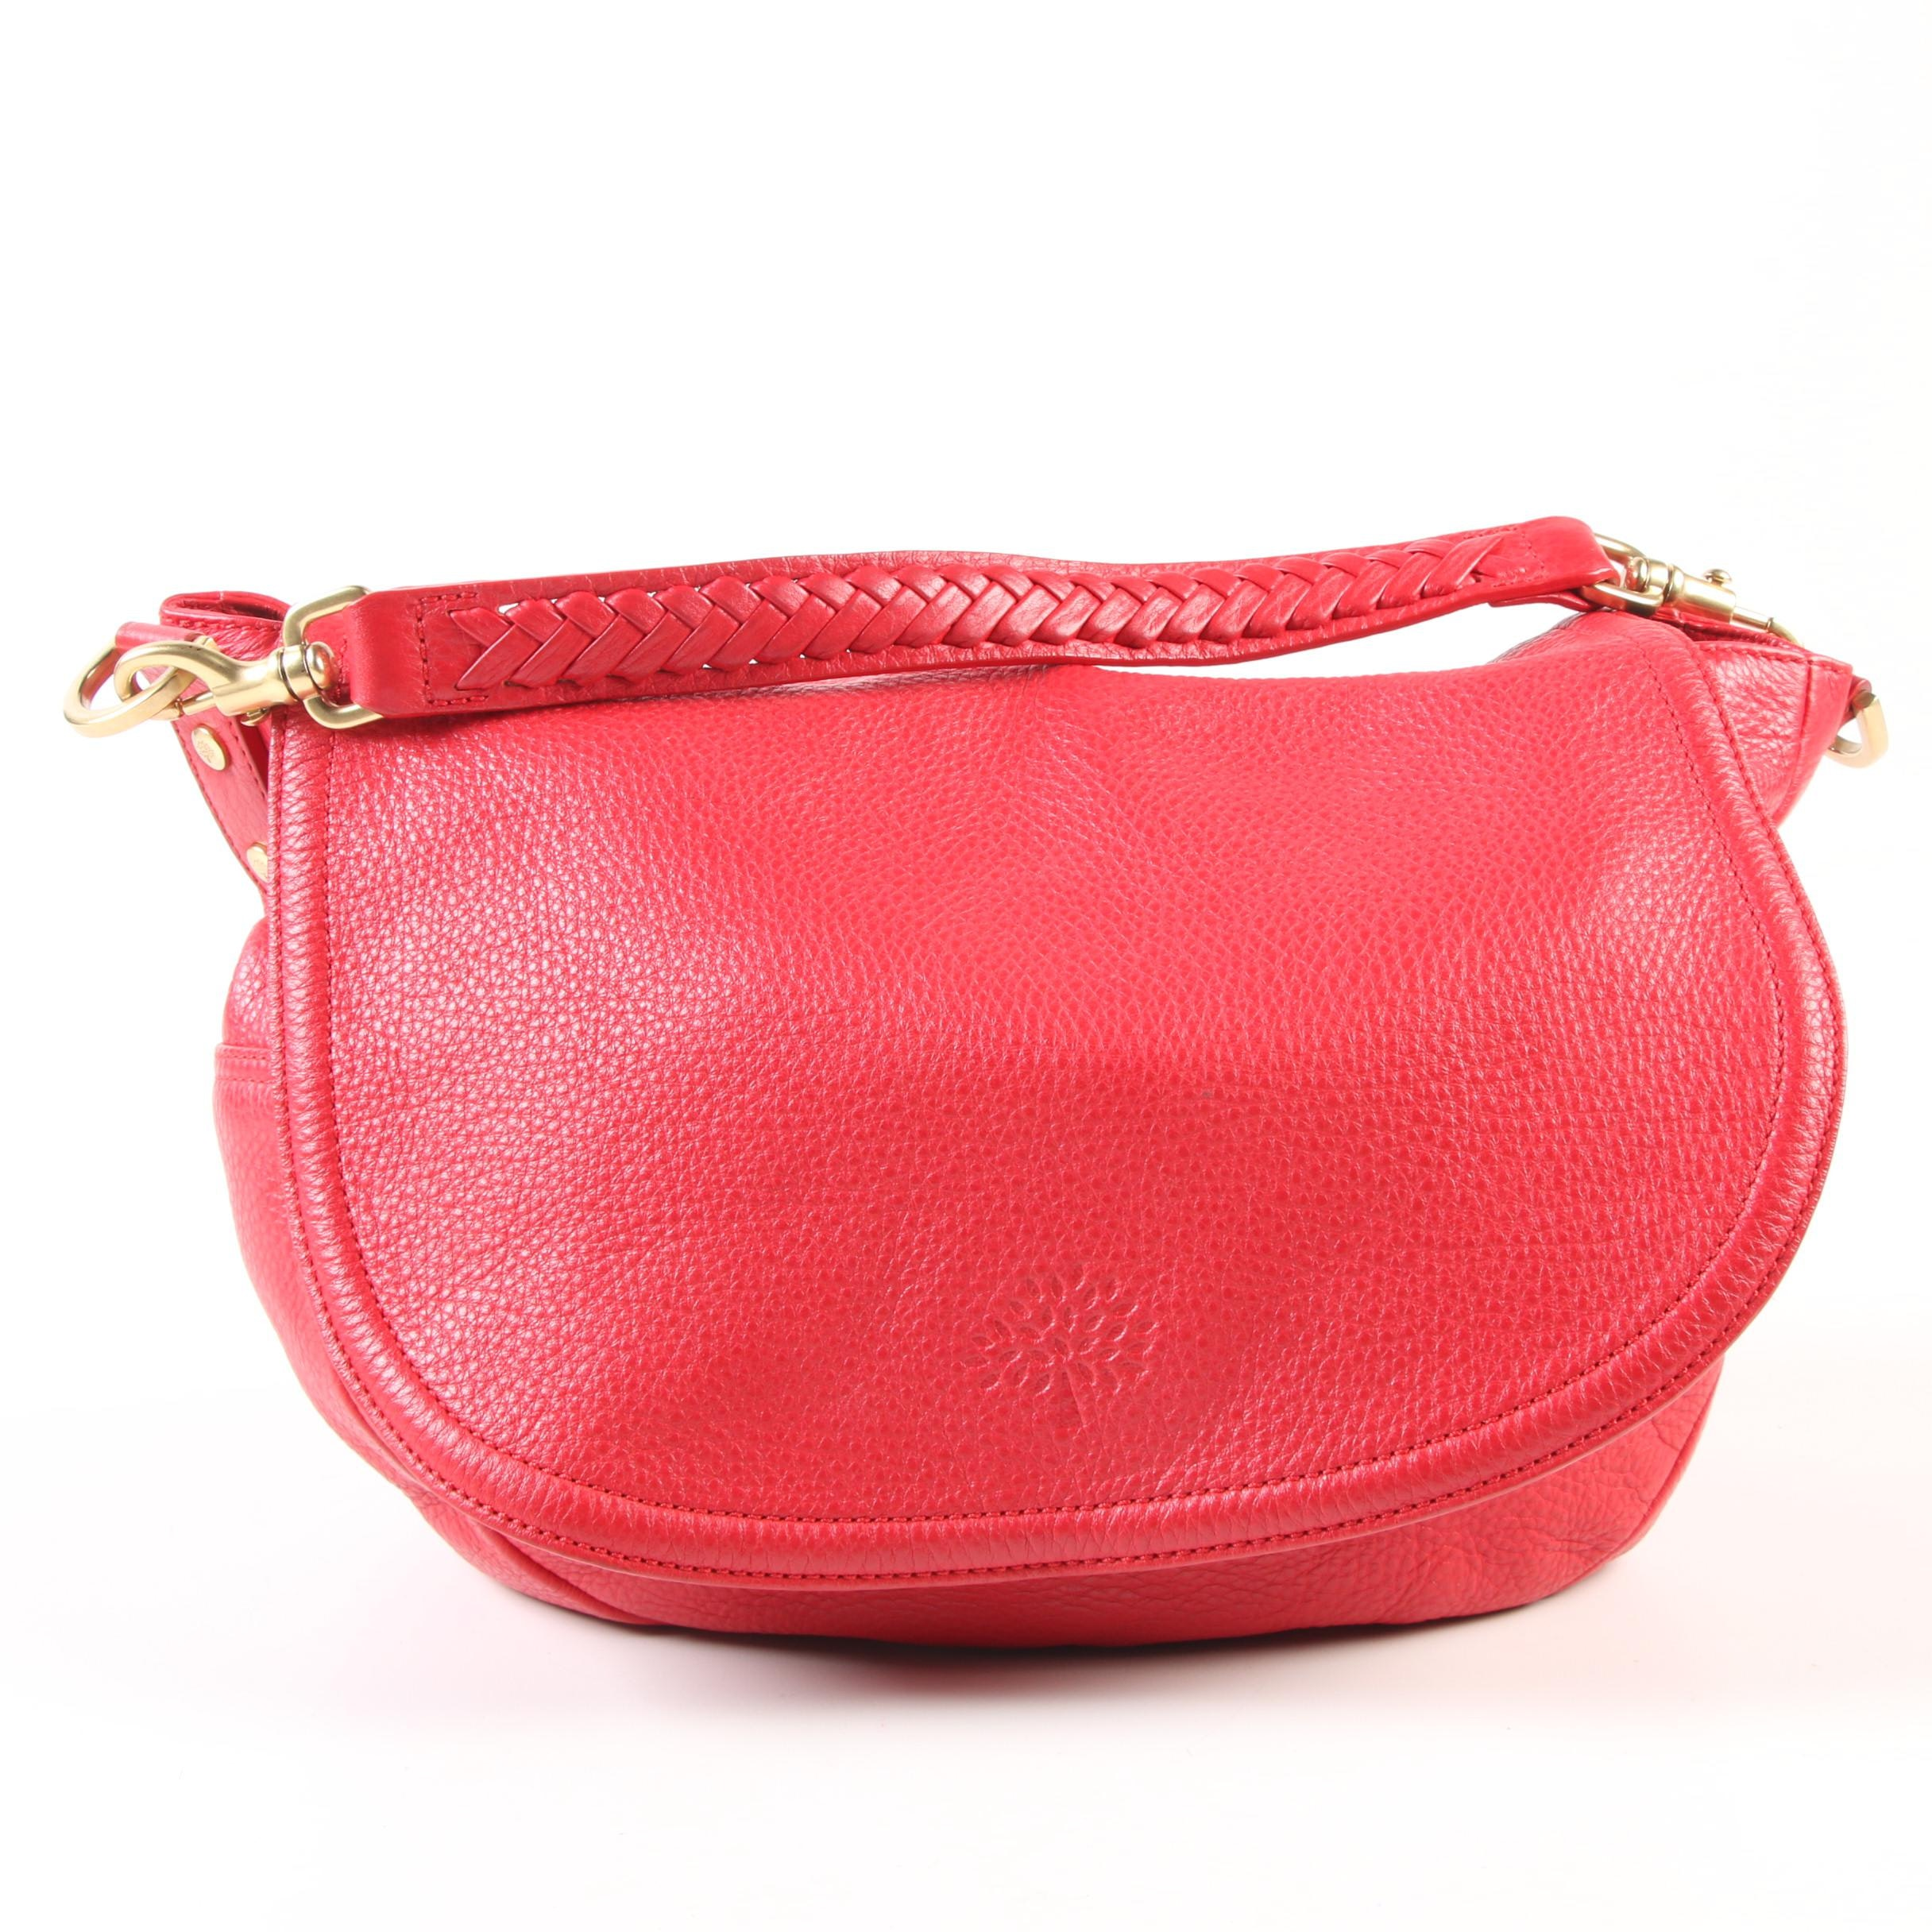 Mulberry Effie Large Satchel in Red Pebble Grain Leather with Woven Handle